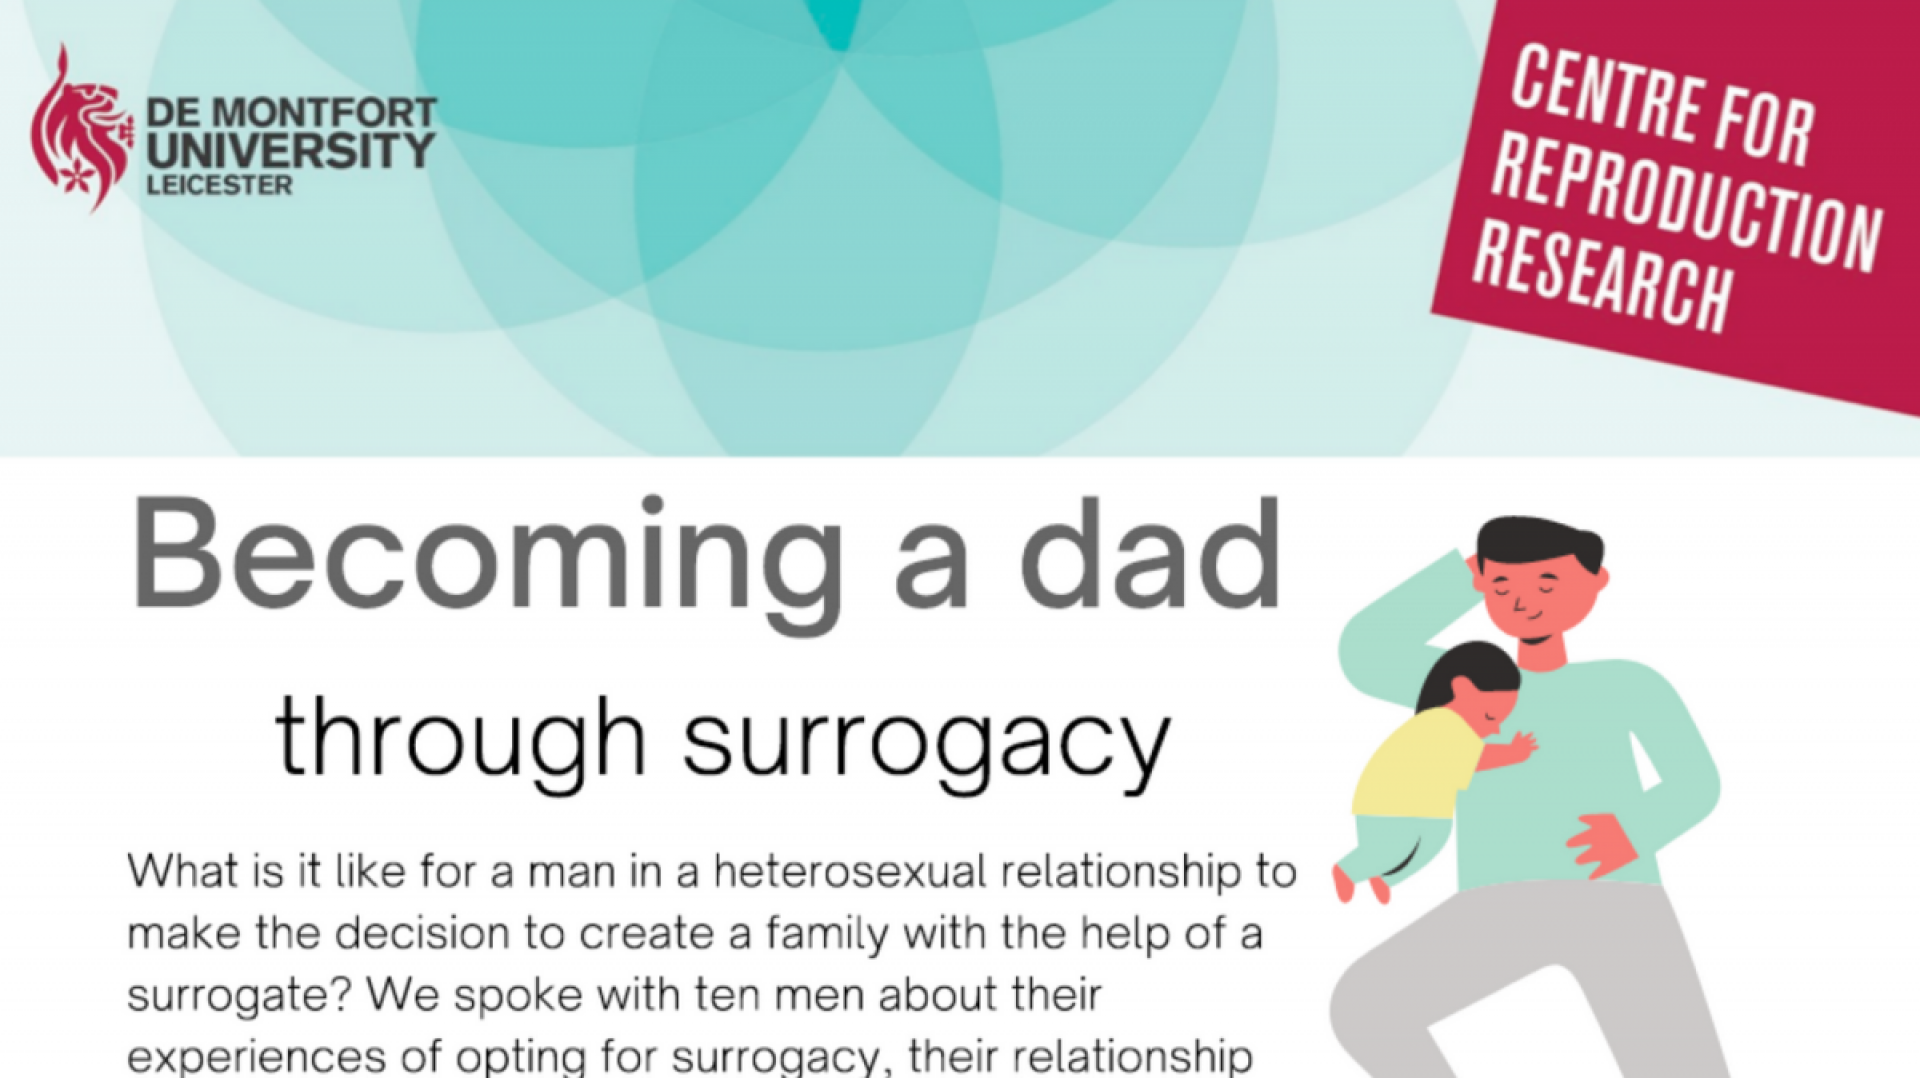 Infographic - Becoming a dad through surrogacy research